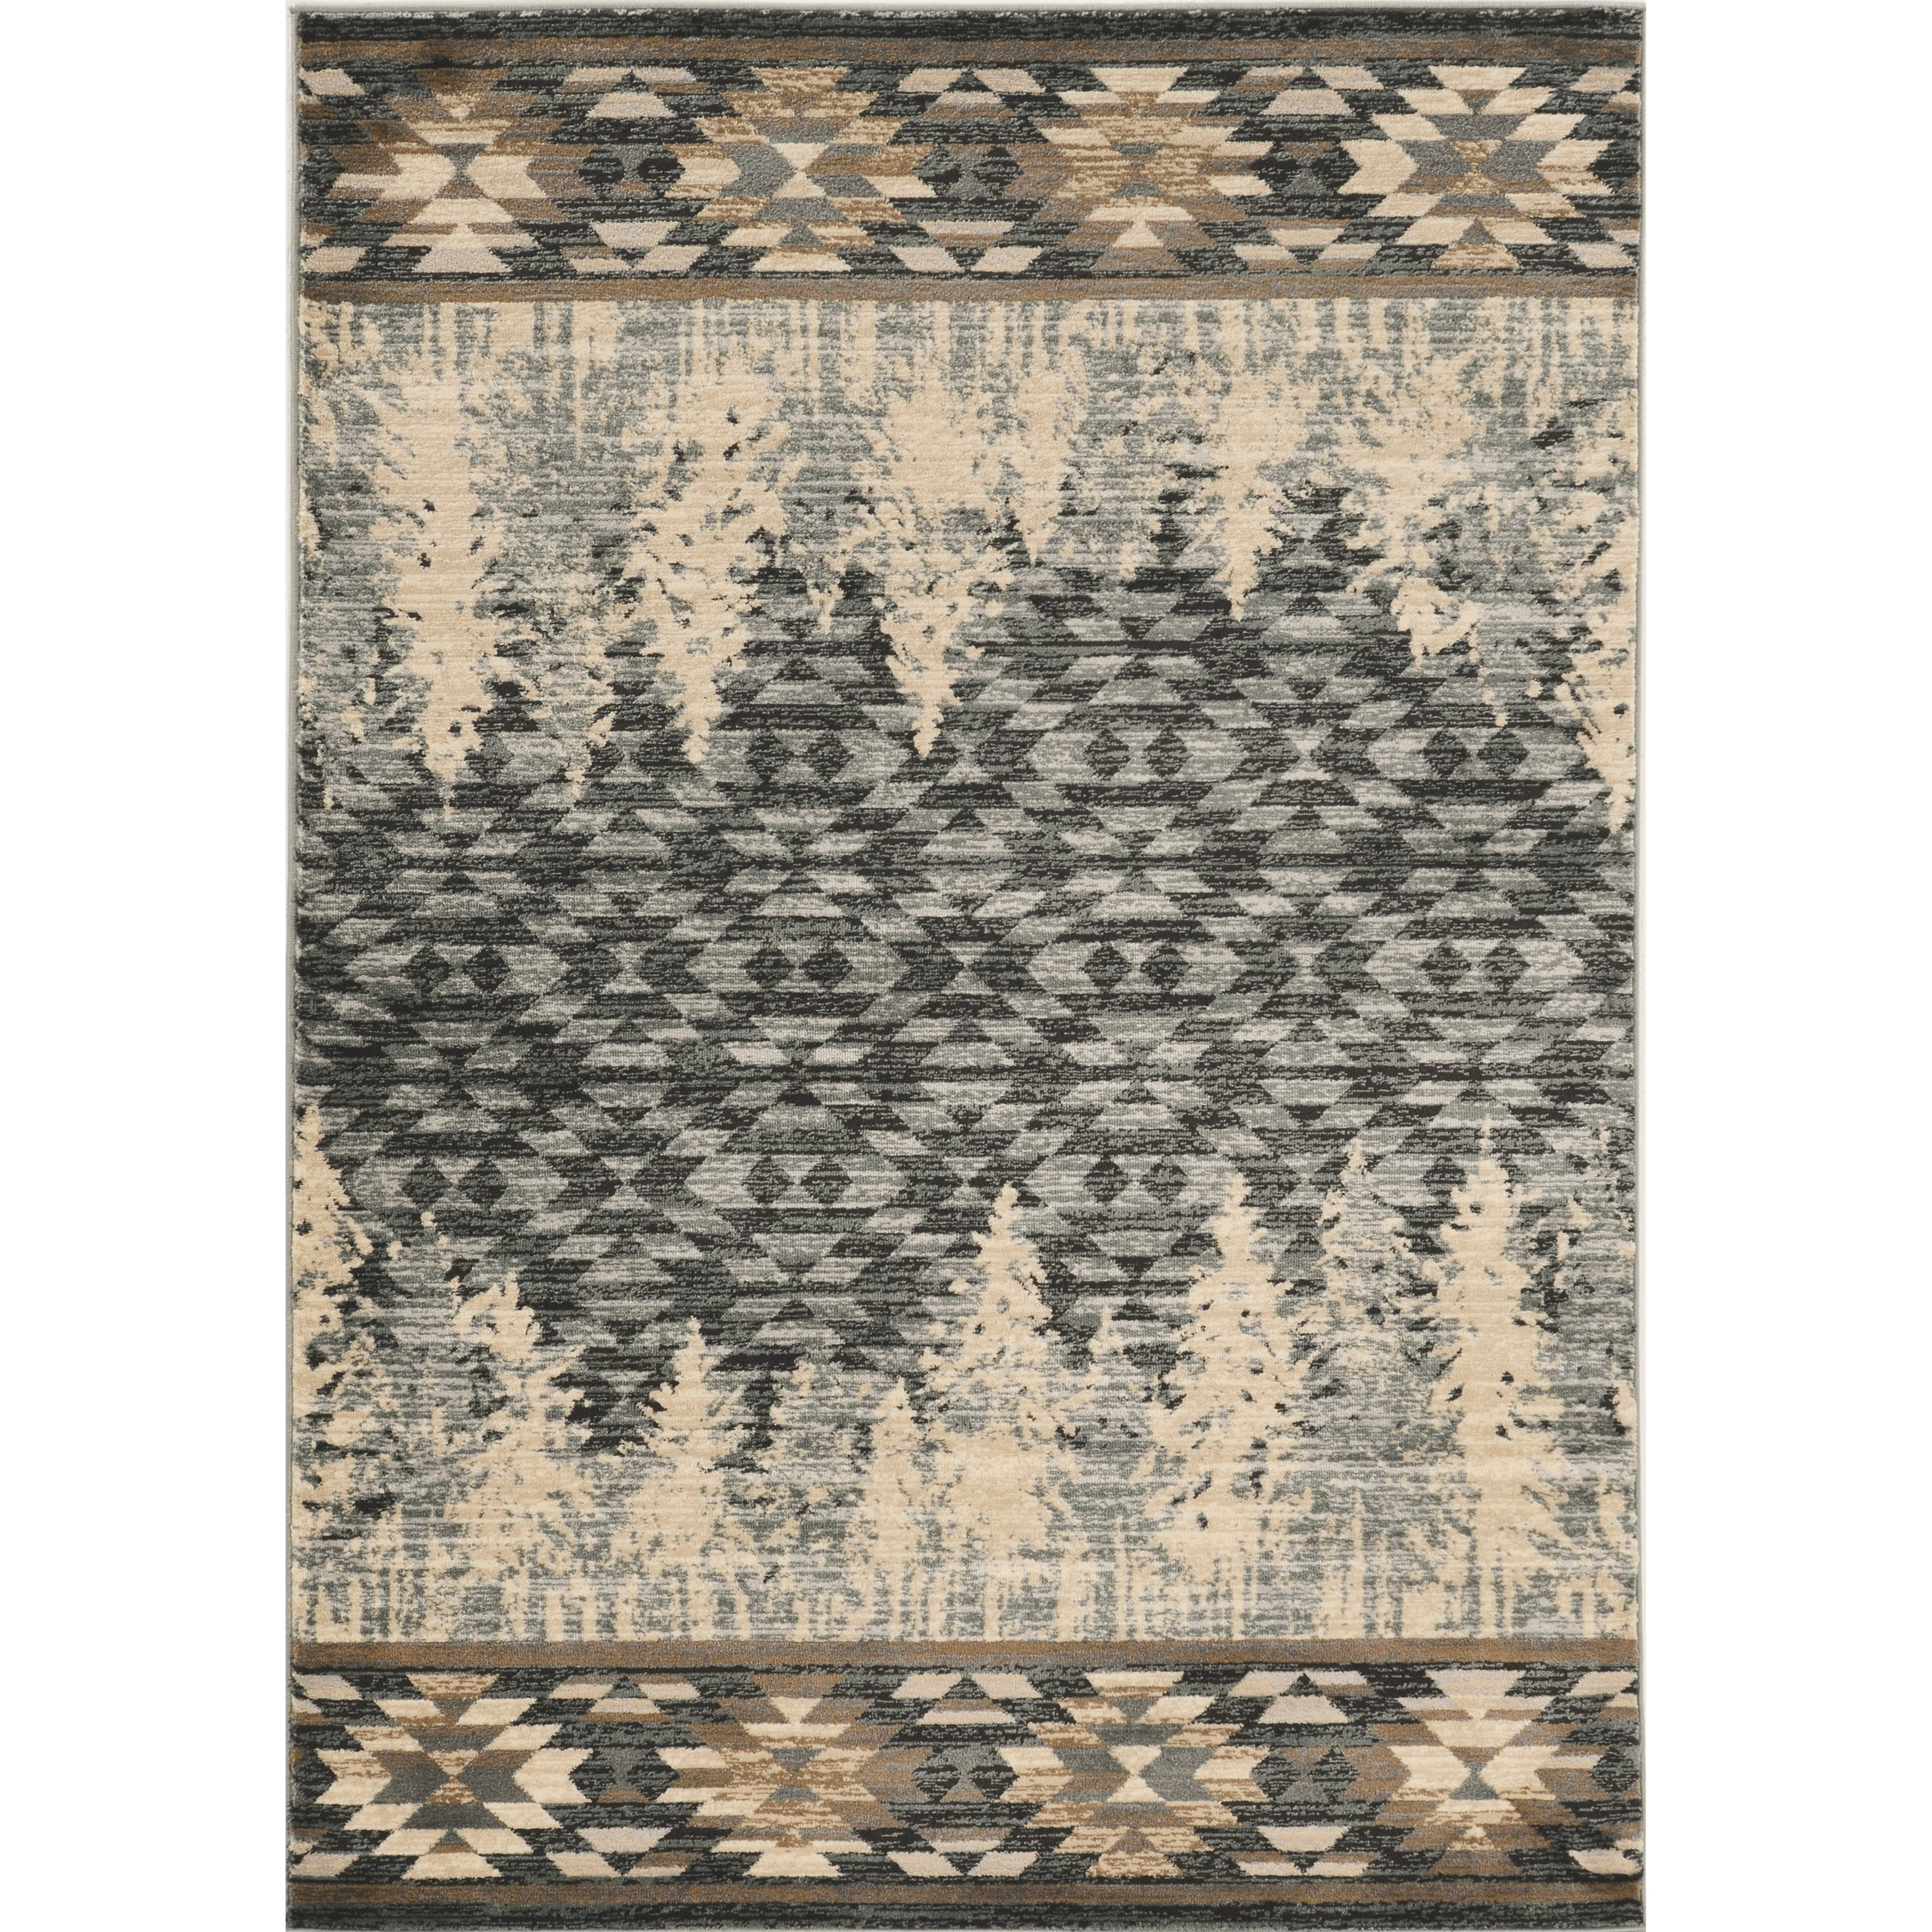 Chester 9' x 12' Slate Blue Pines Rug by Kas at Darvin Furniture